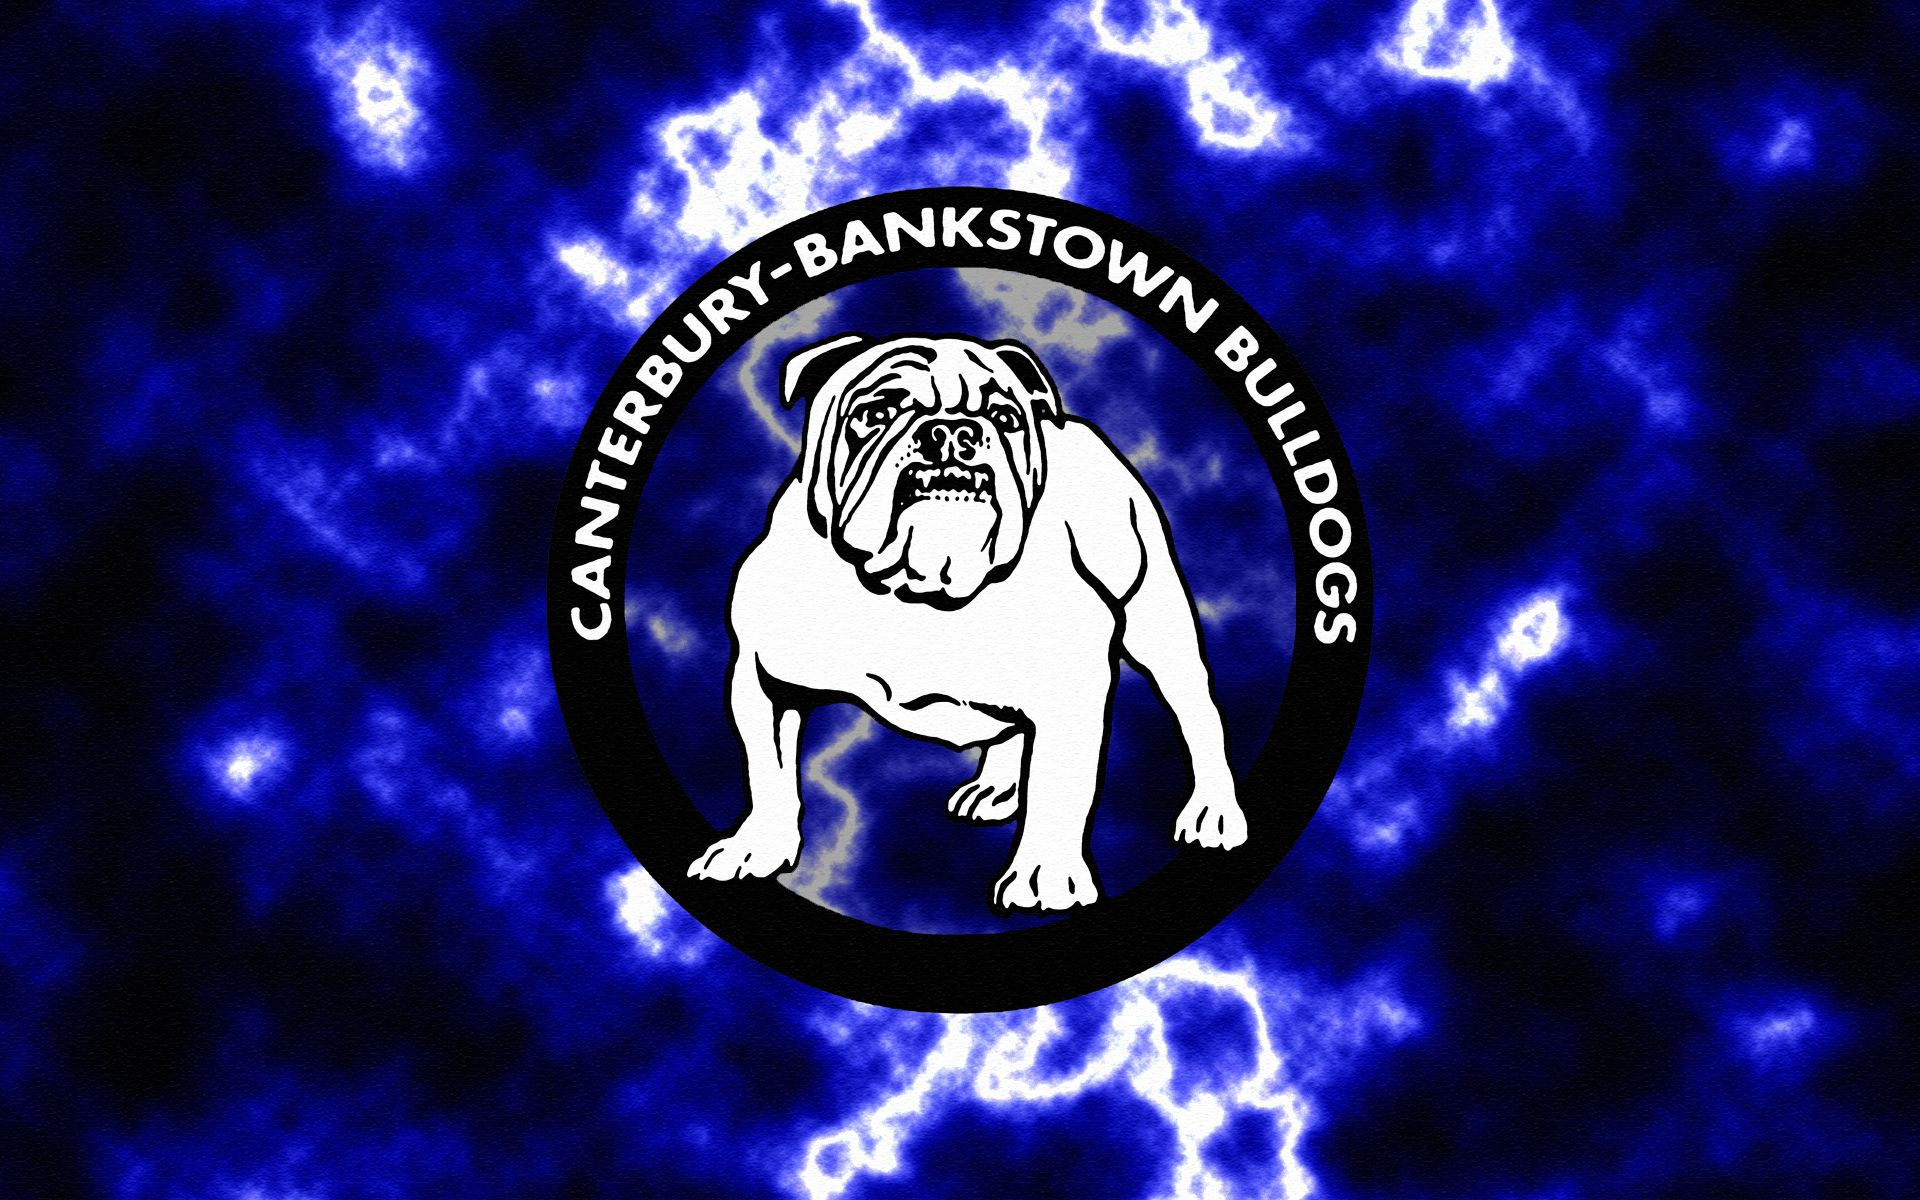 Canterbury-Bankstown Bulldogs Lightning Wallpaper by Sunnyboiiii